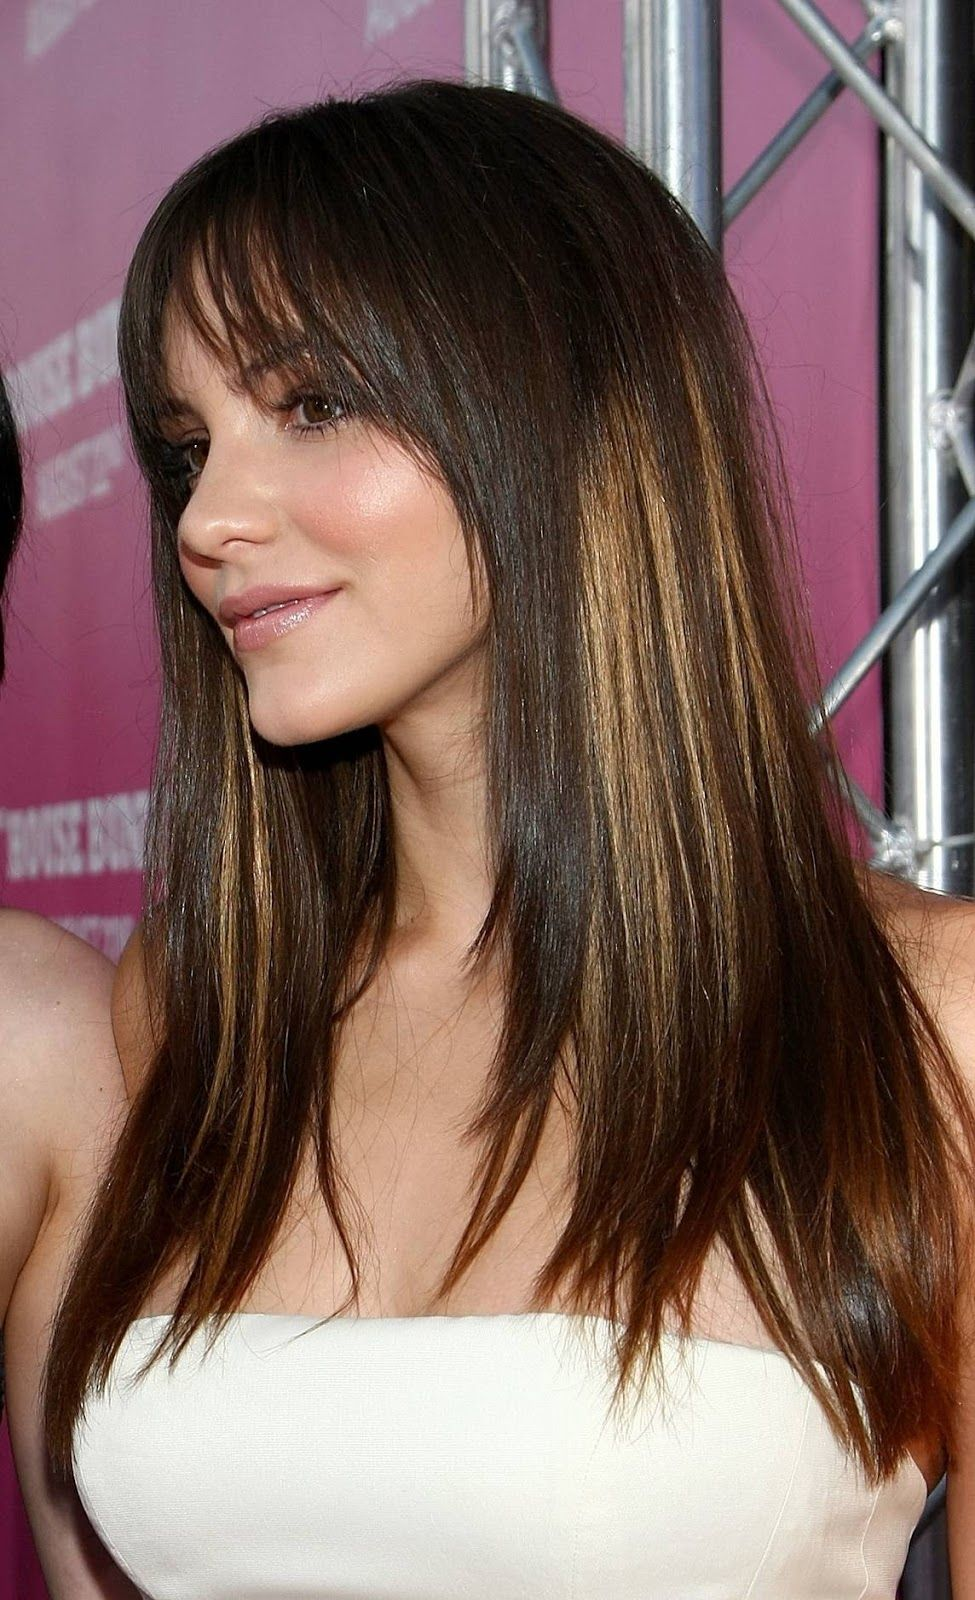 Haircuts for men with fine straight hair short hairstyles for men with fine hair  new best hairstyles